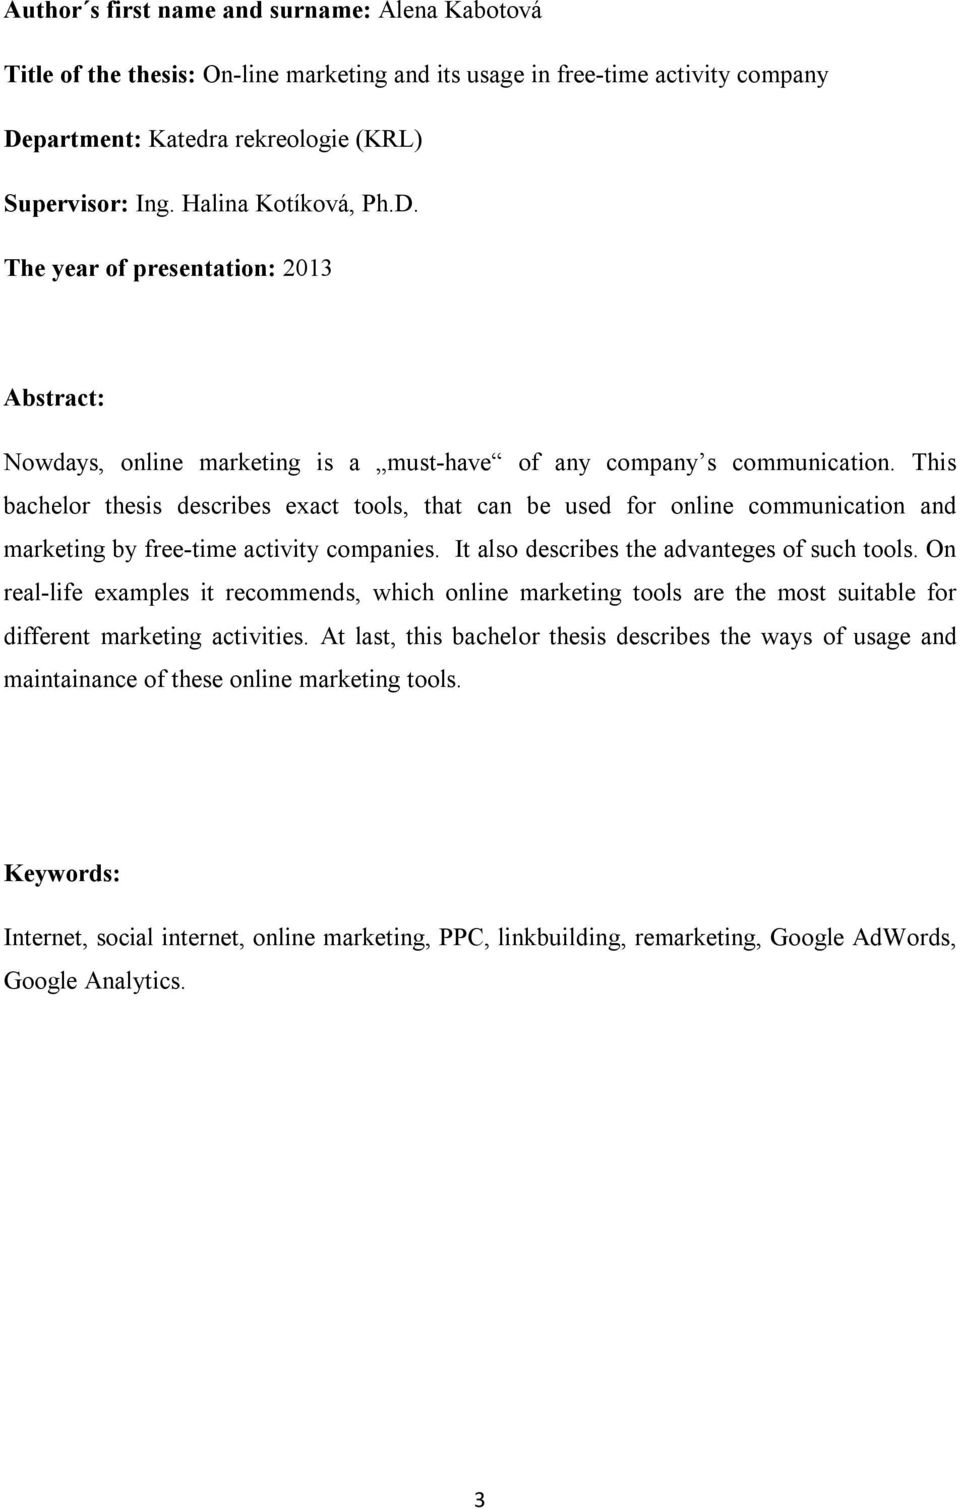 This bachelor thesis describes exact tools, that can be used for online communication and marketing by free-time activity companies. It also describes the advanteges of such tools.